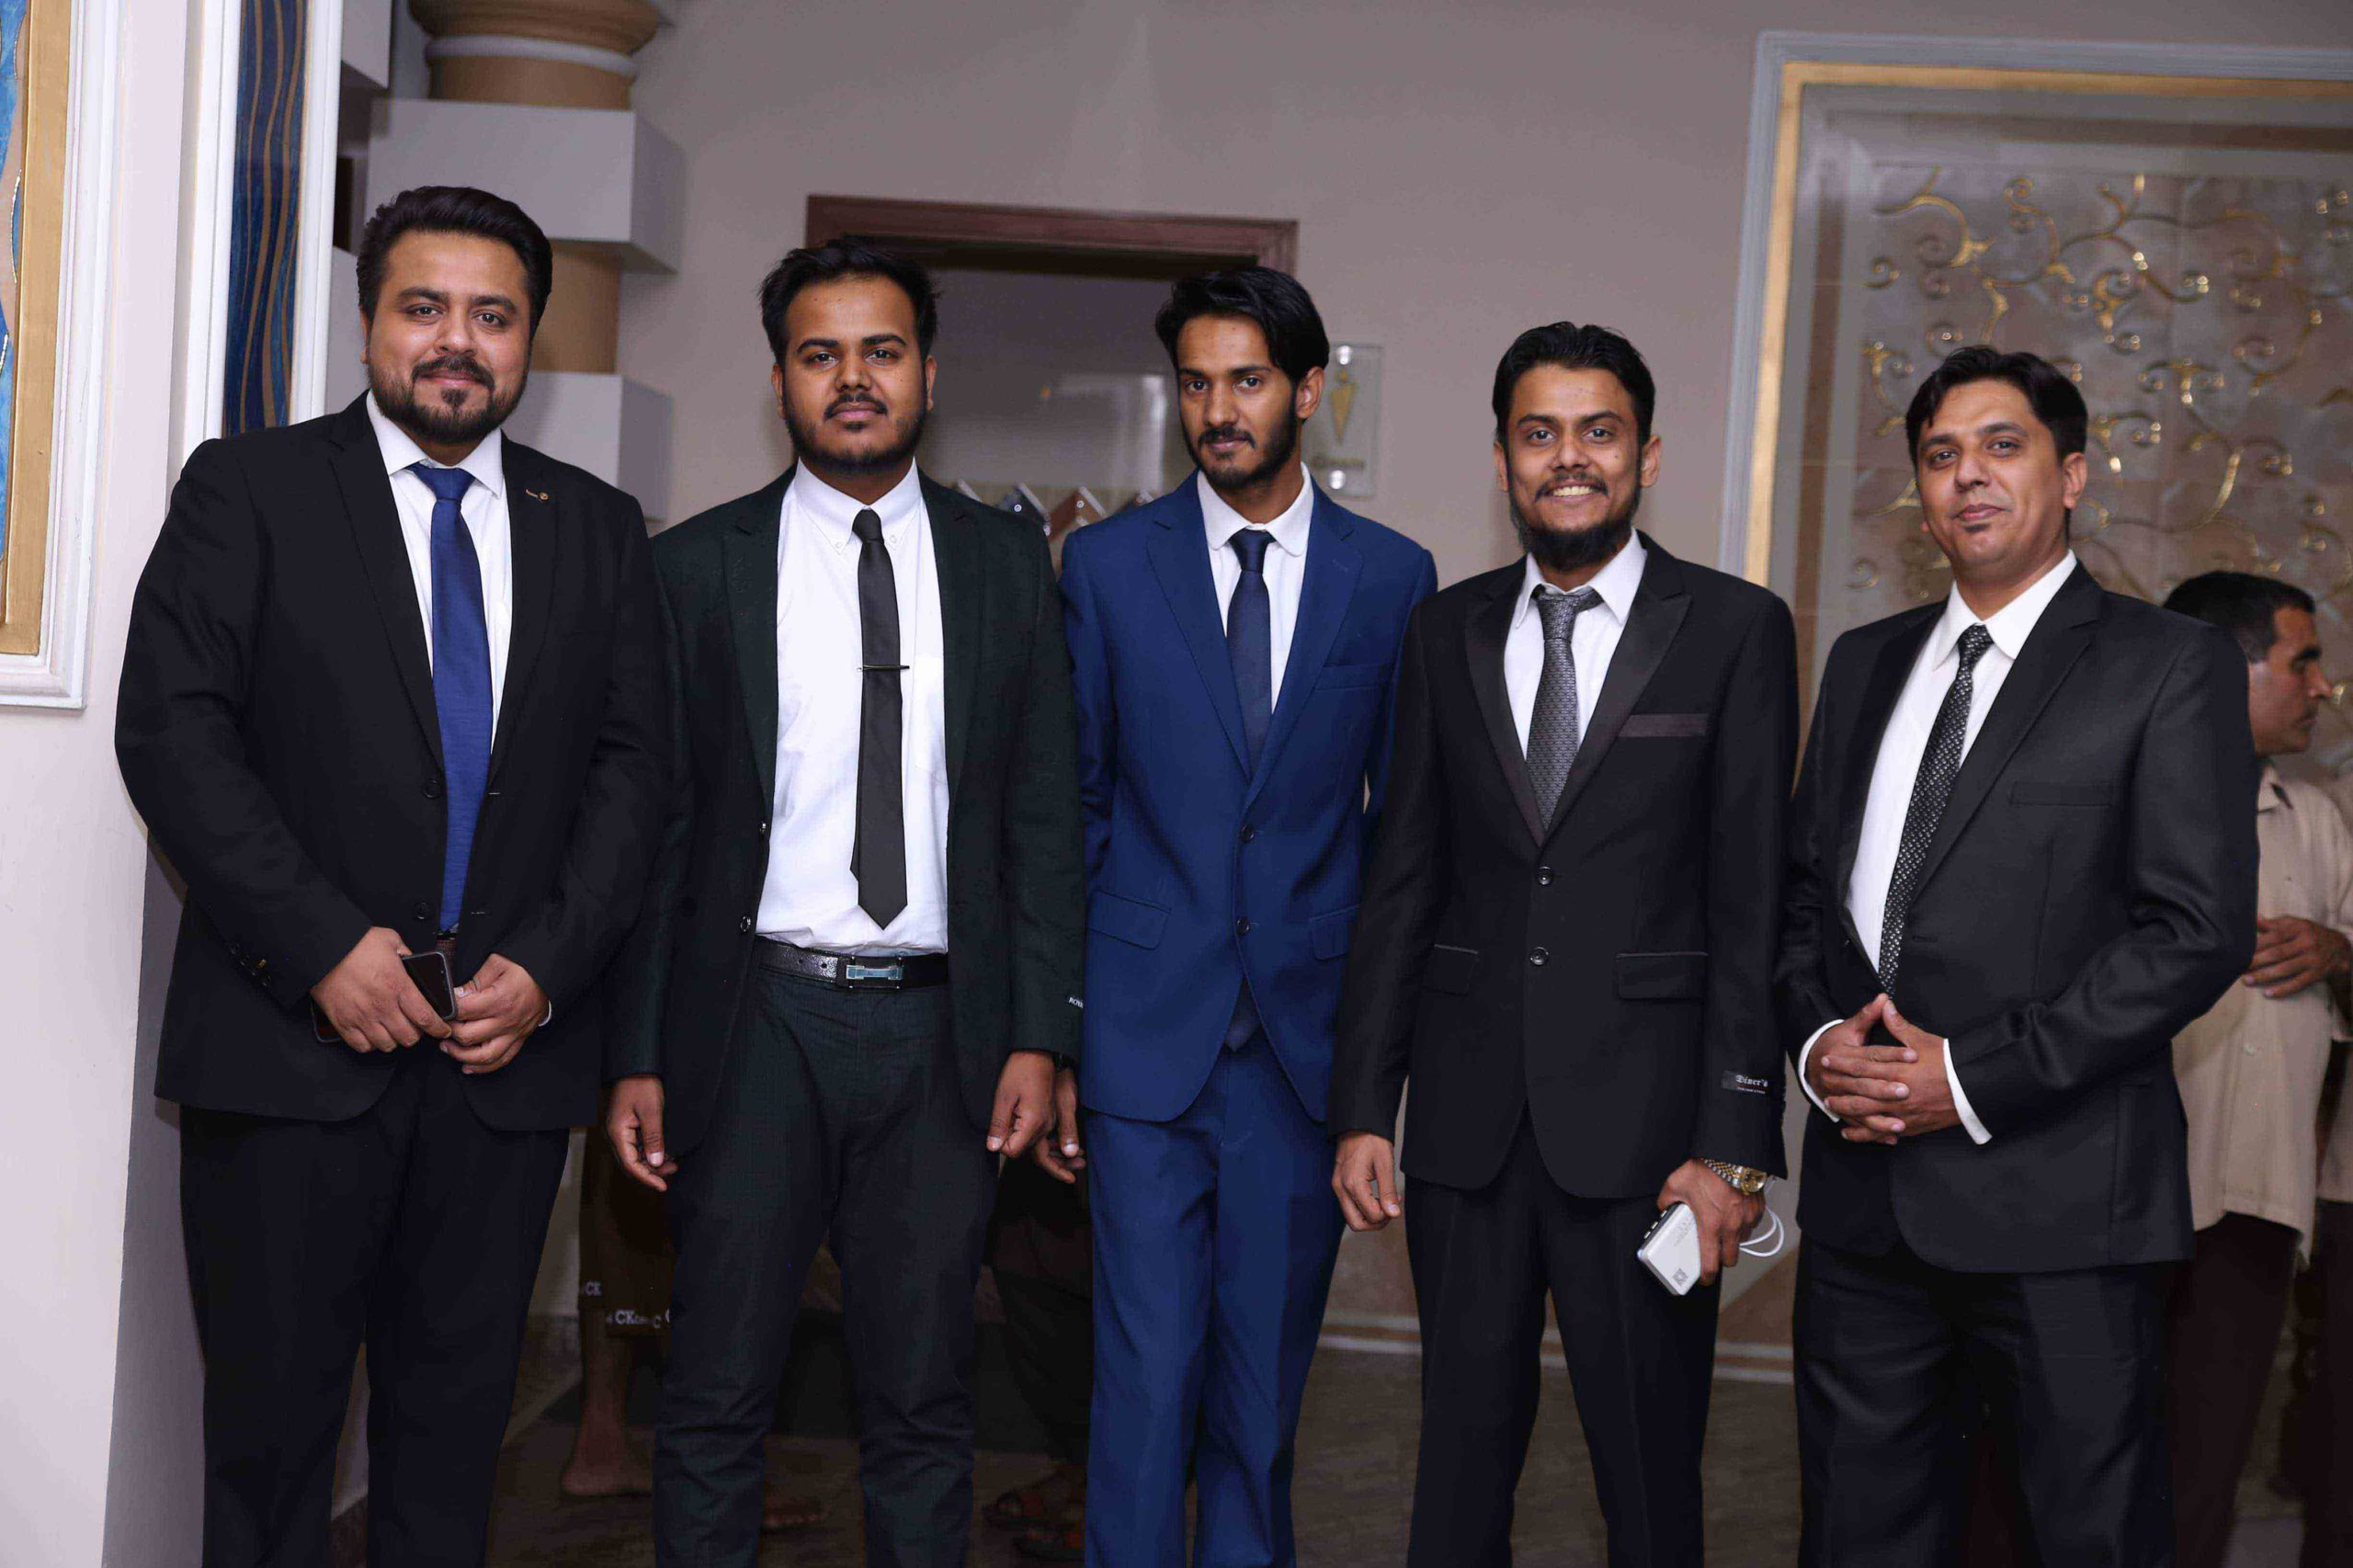 STAFF_ANNUAL_DINNER_&_IFTAR_PARTTY_15